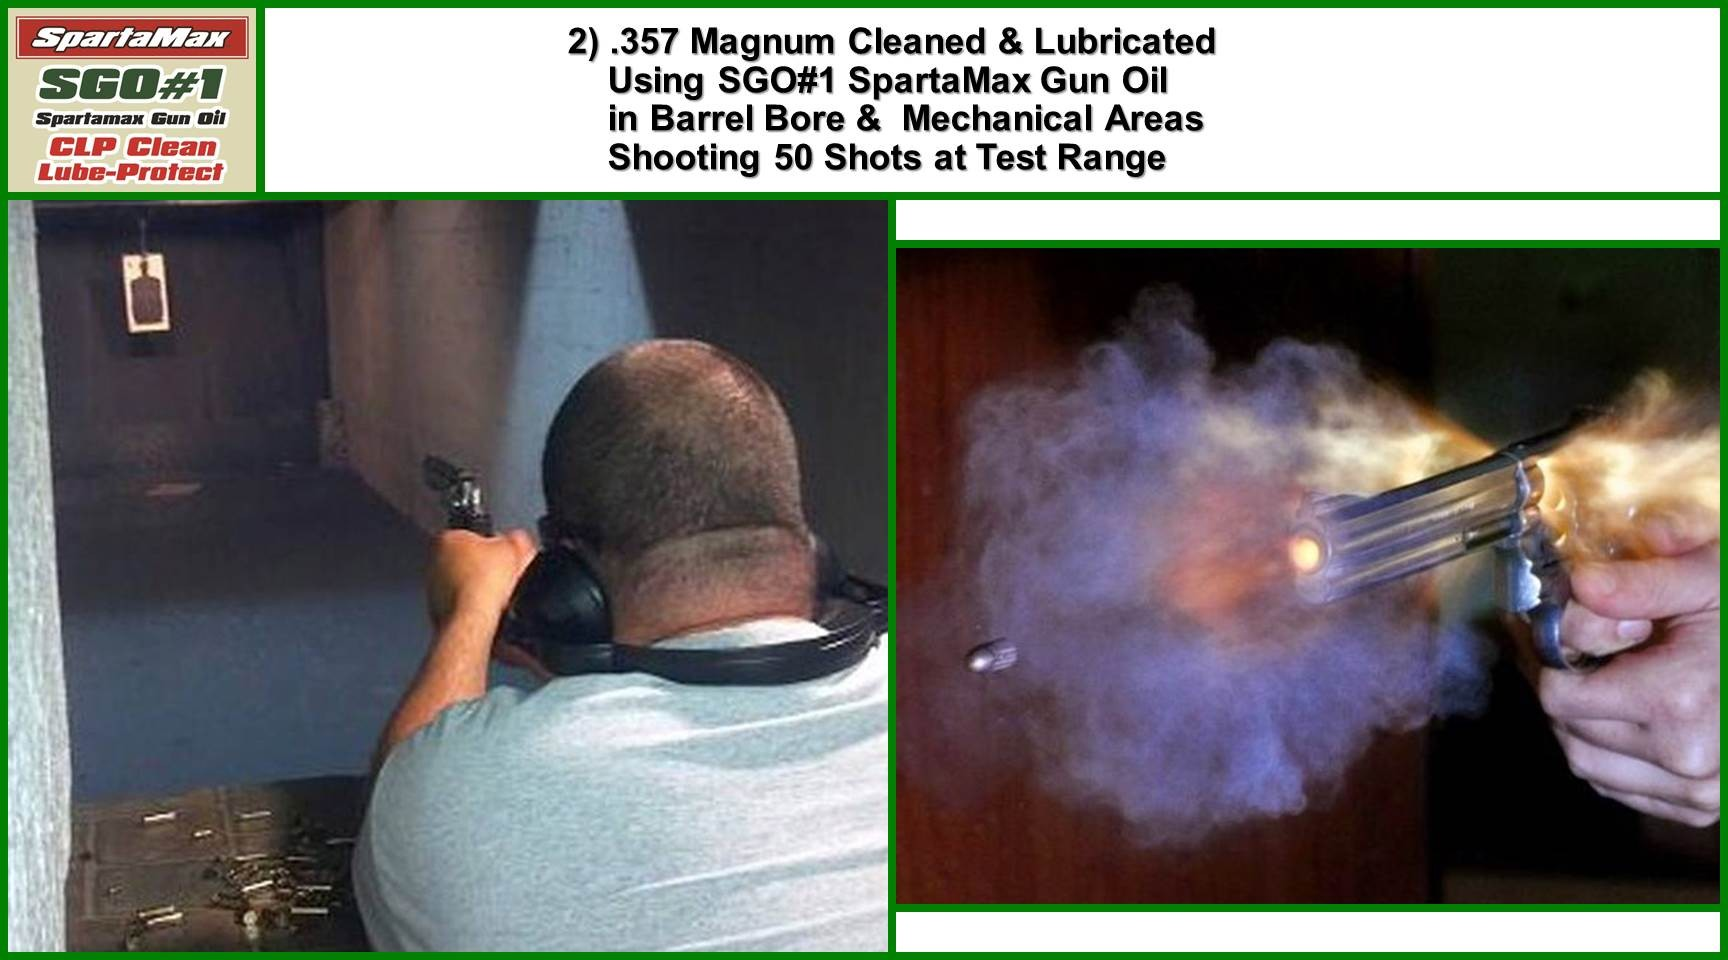 .357 Magnum Revolver 50 shot test after